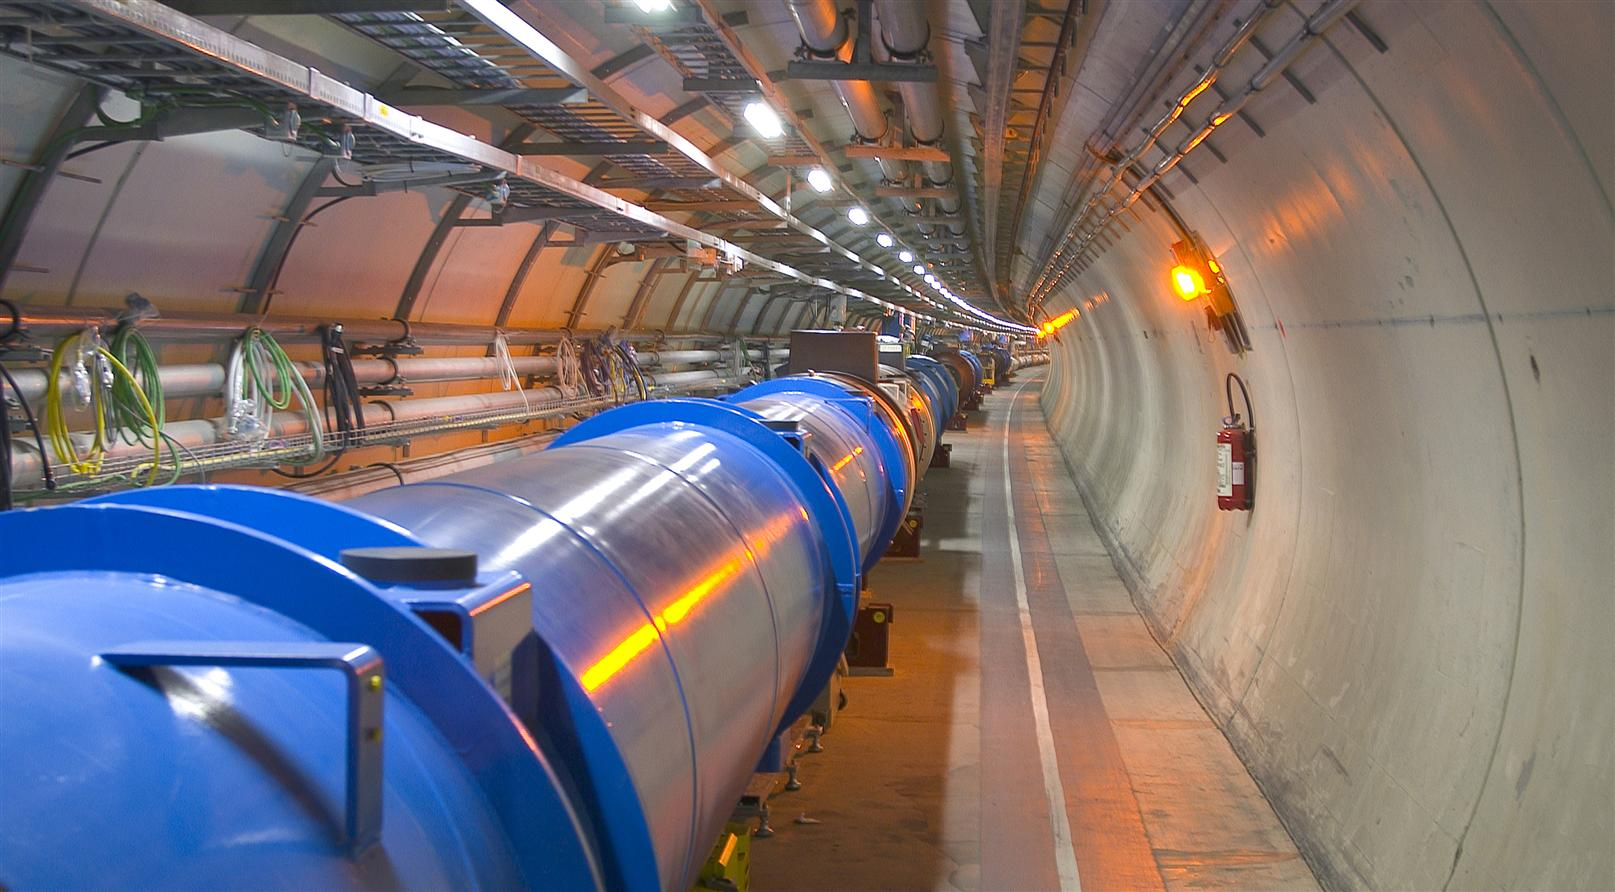 First LHC magnets installed